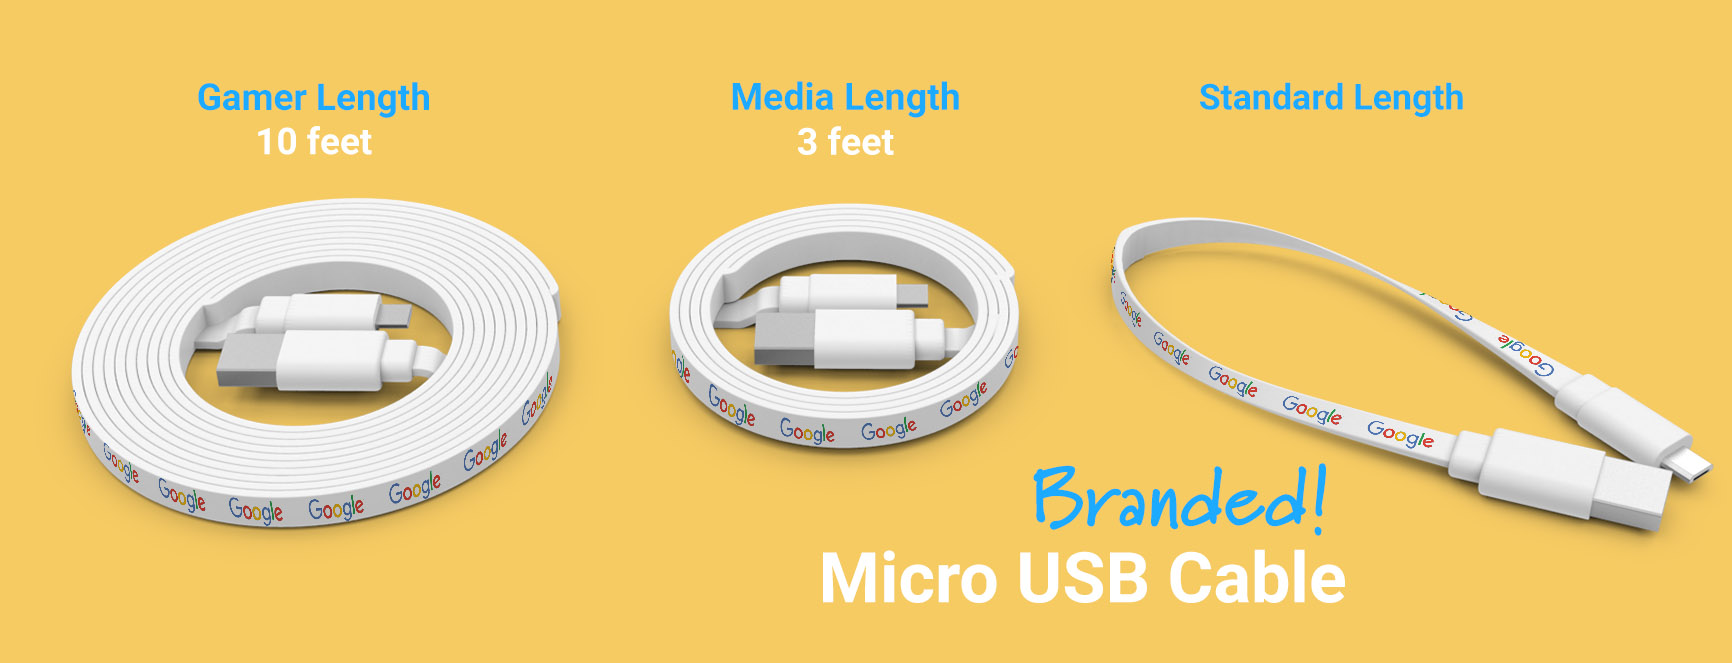 Branded Cable Lengths